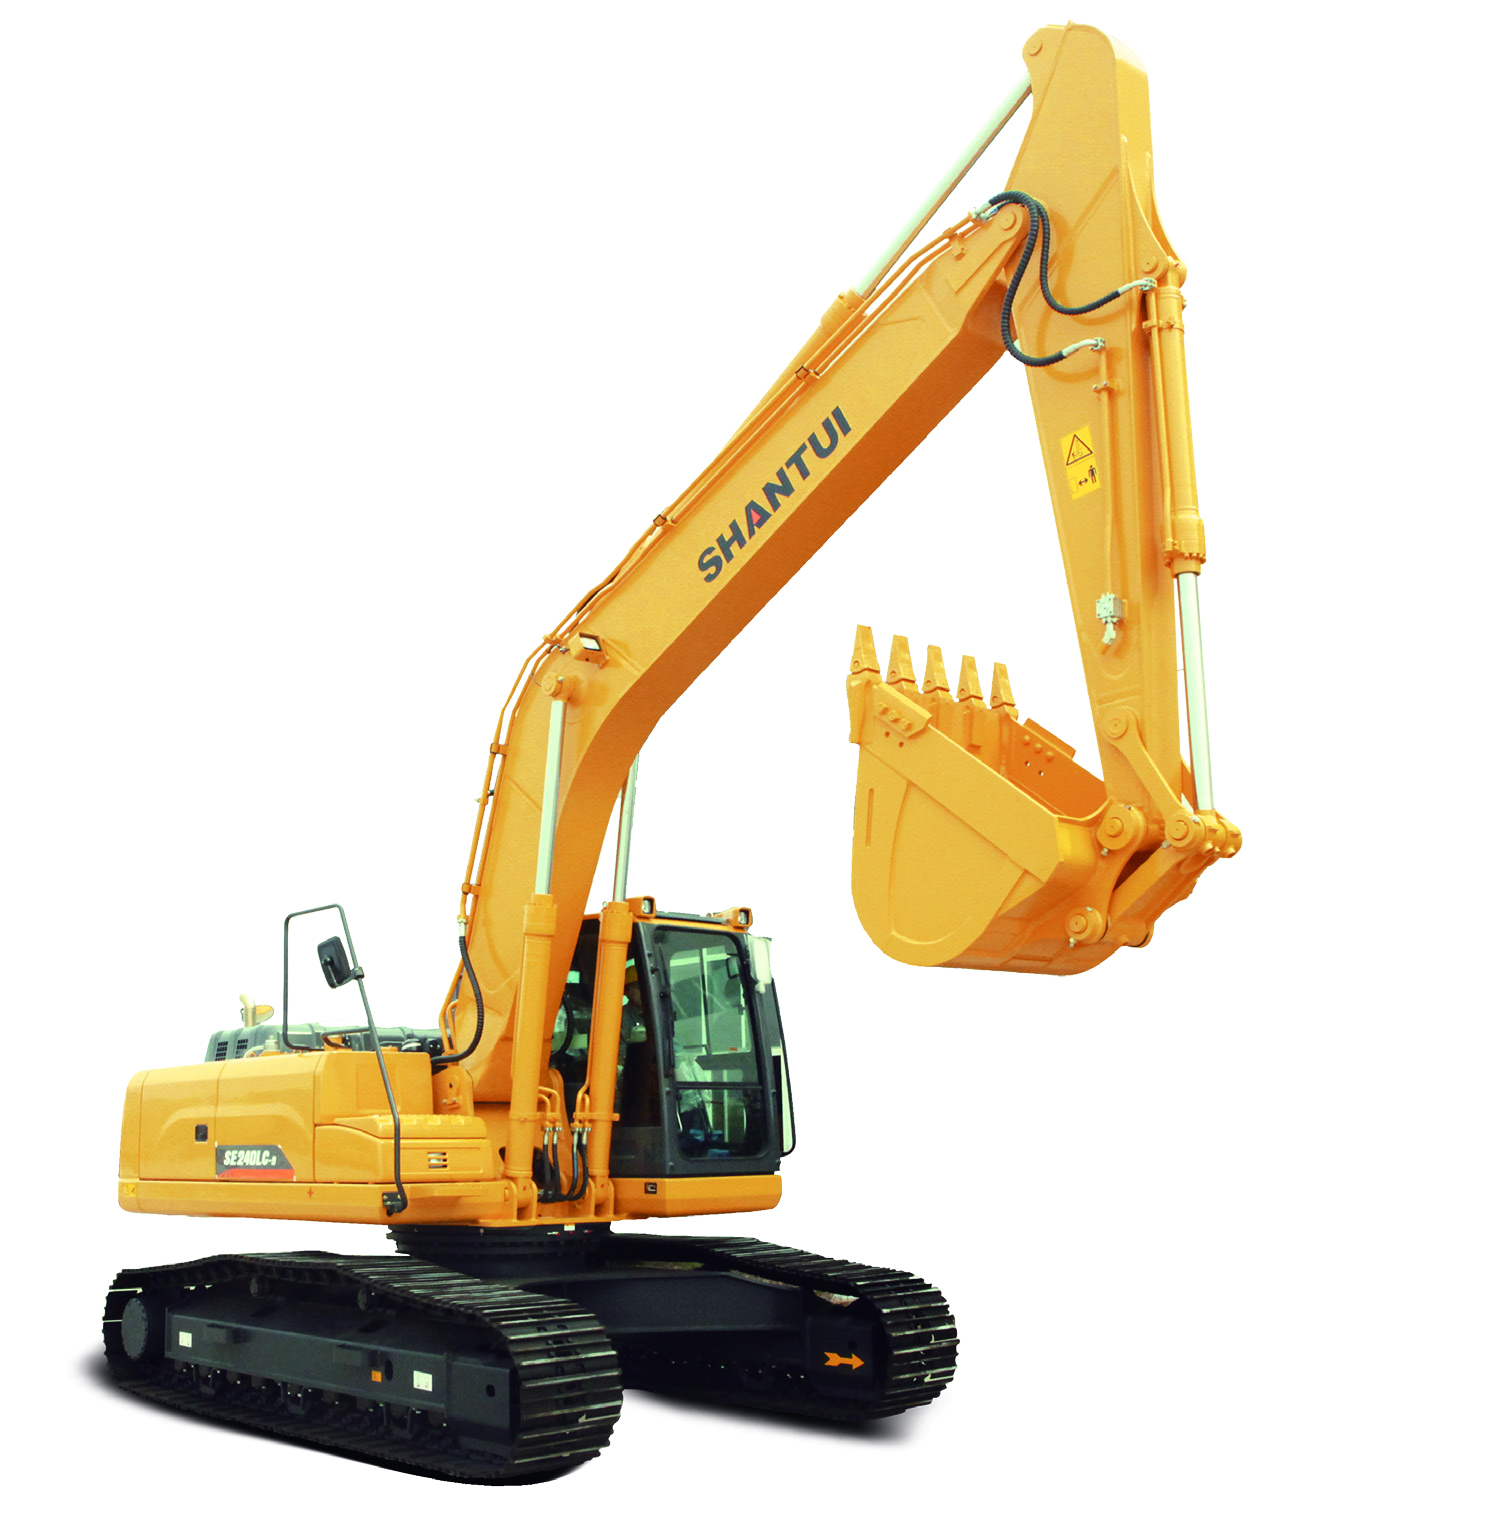 Shantui Medium-Sized 24.8ton Crawler Excavator